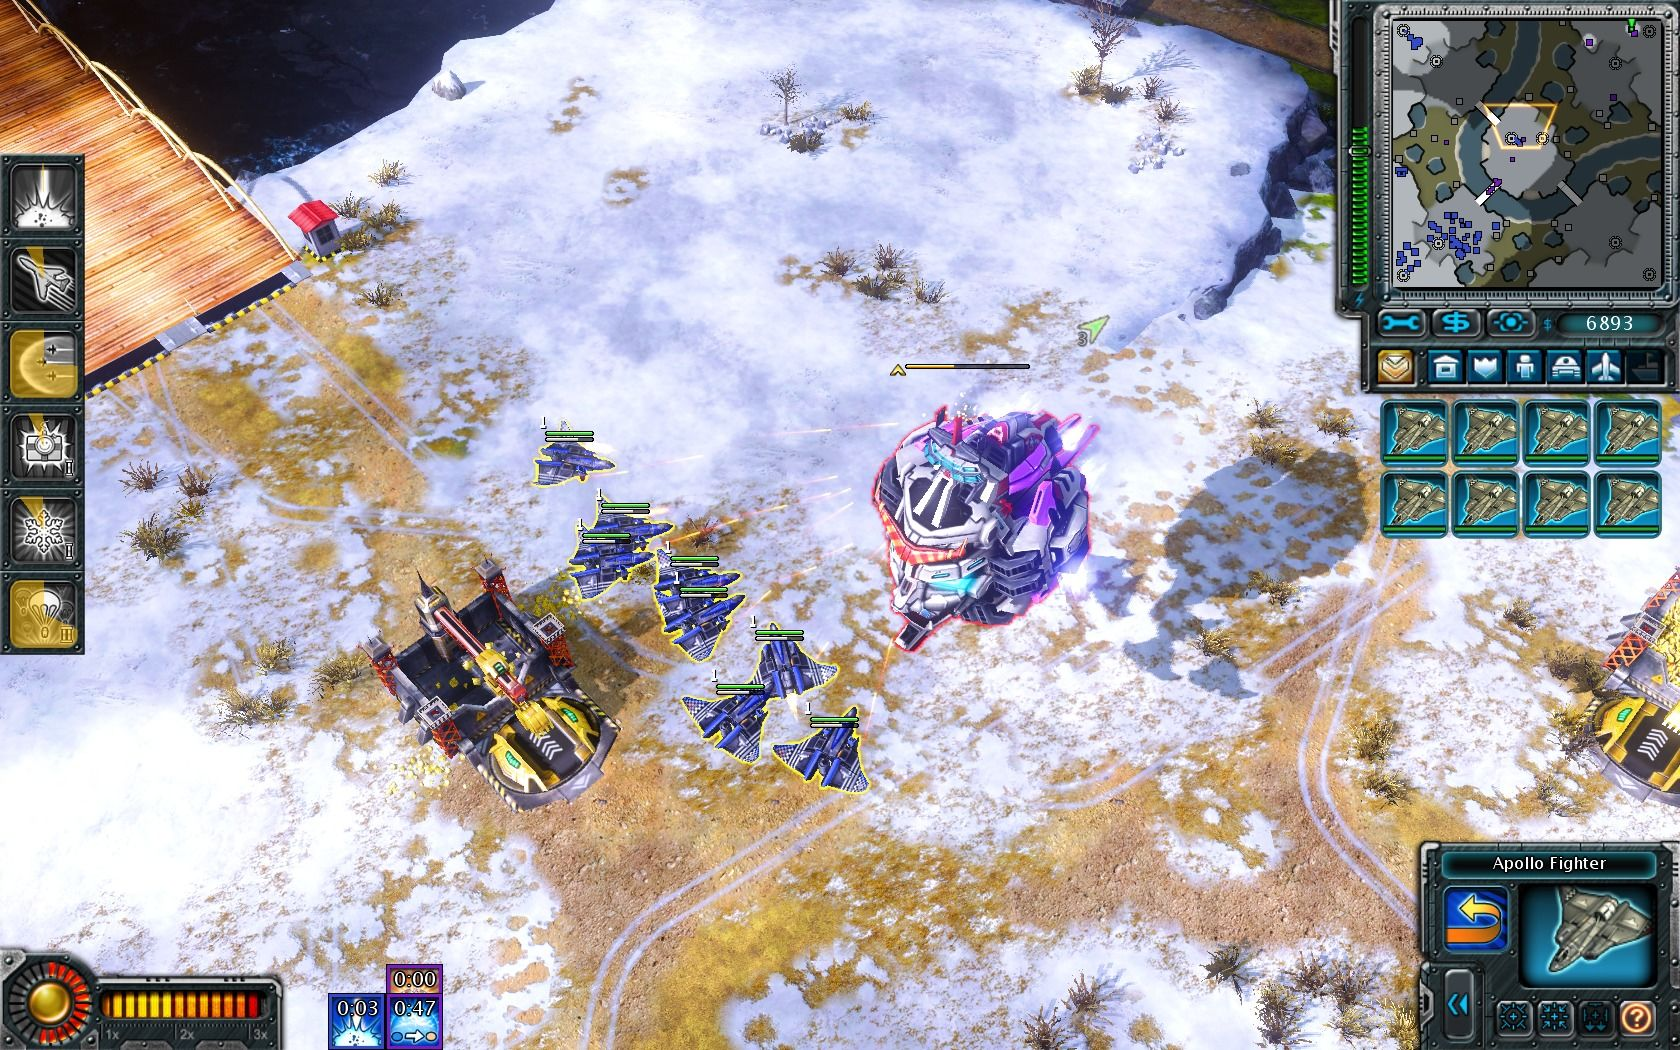 Command & Conquer: Red Alert 3 - Uprising Windows The new flying fortress of the Empire will obliterate your forces if you don't react quickly.